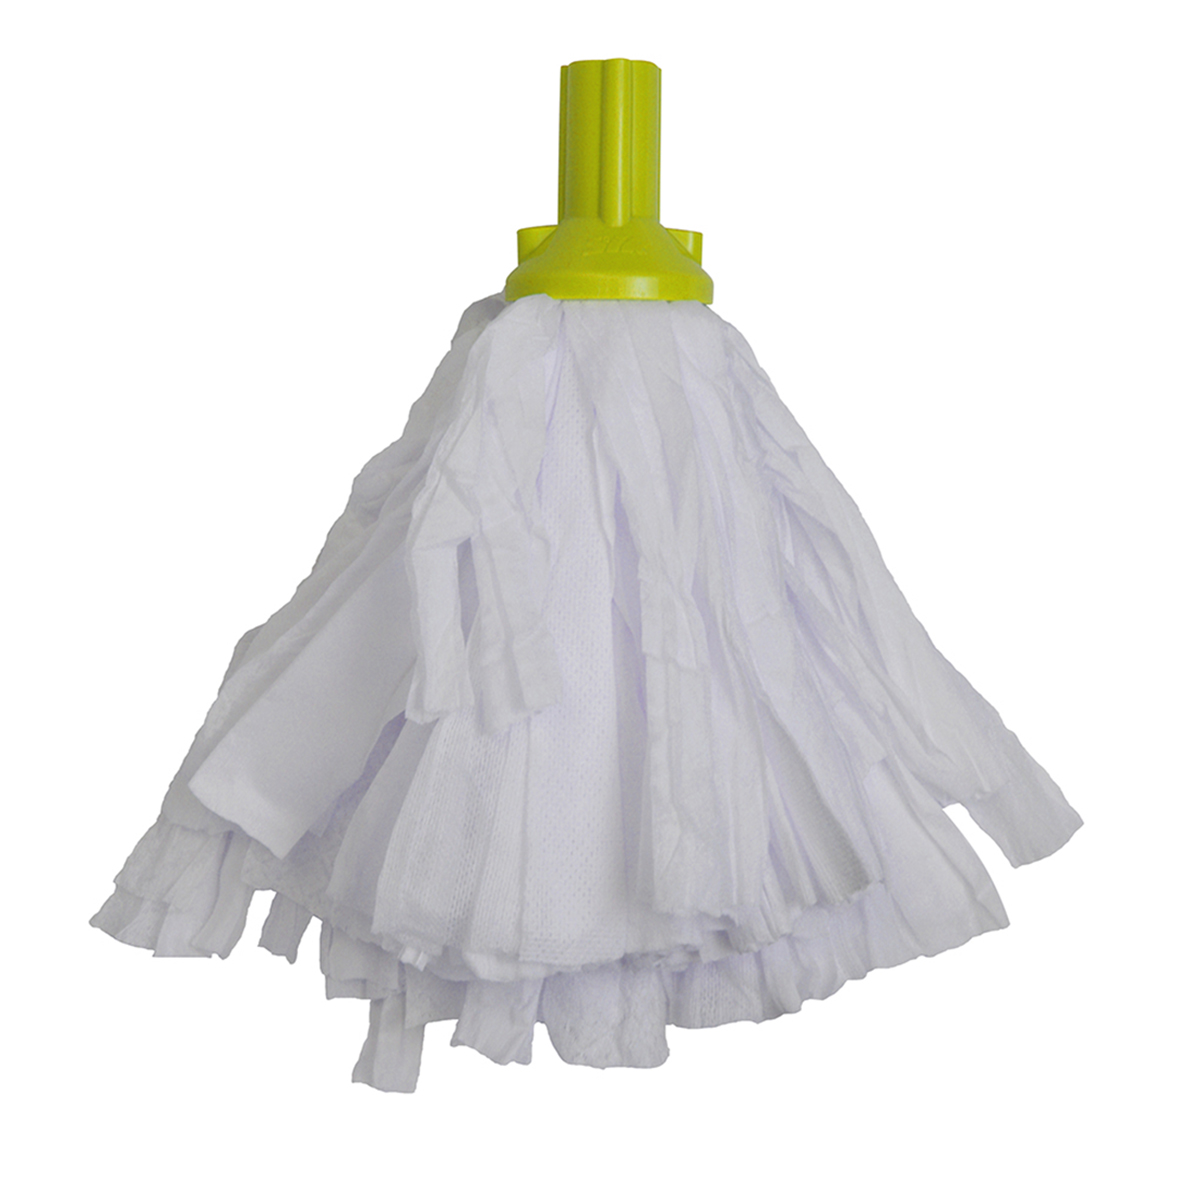 Disposable Bucket Mop Head - Yellow